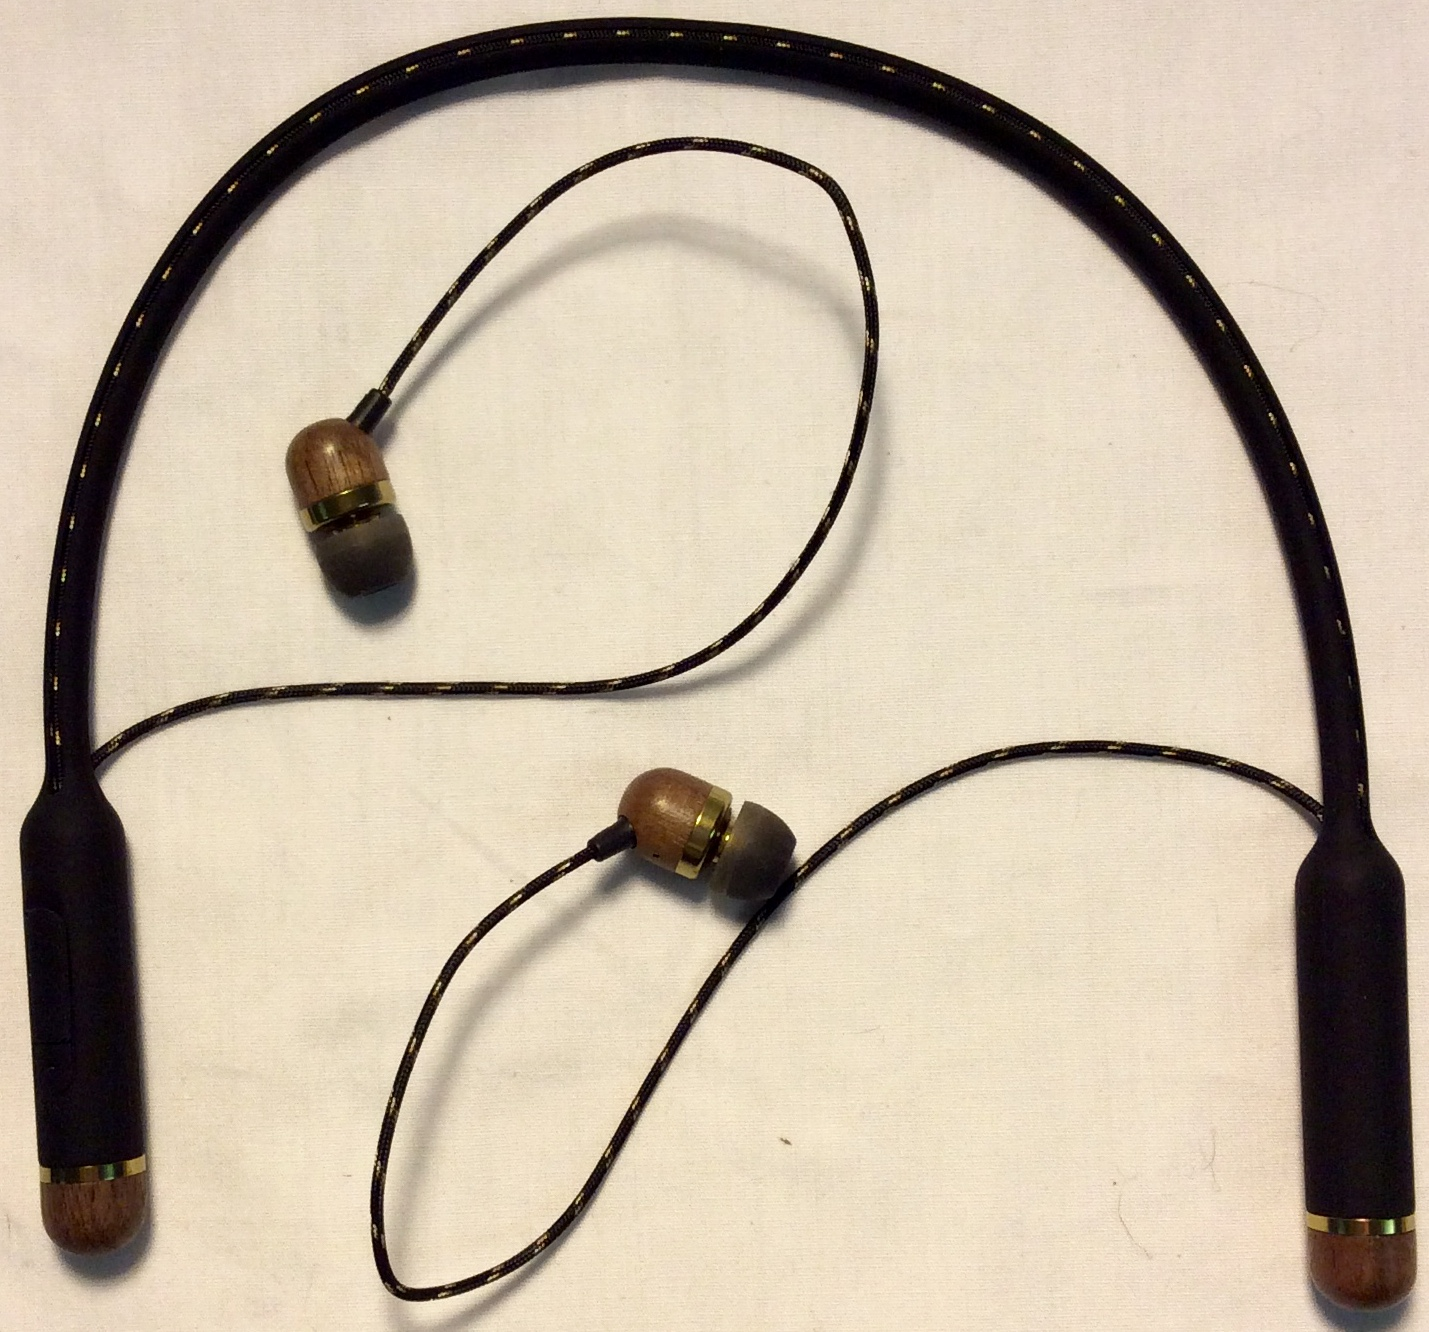 Marley Wireless bluetooth earphones